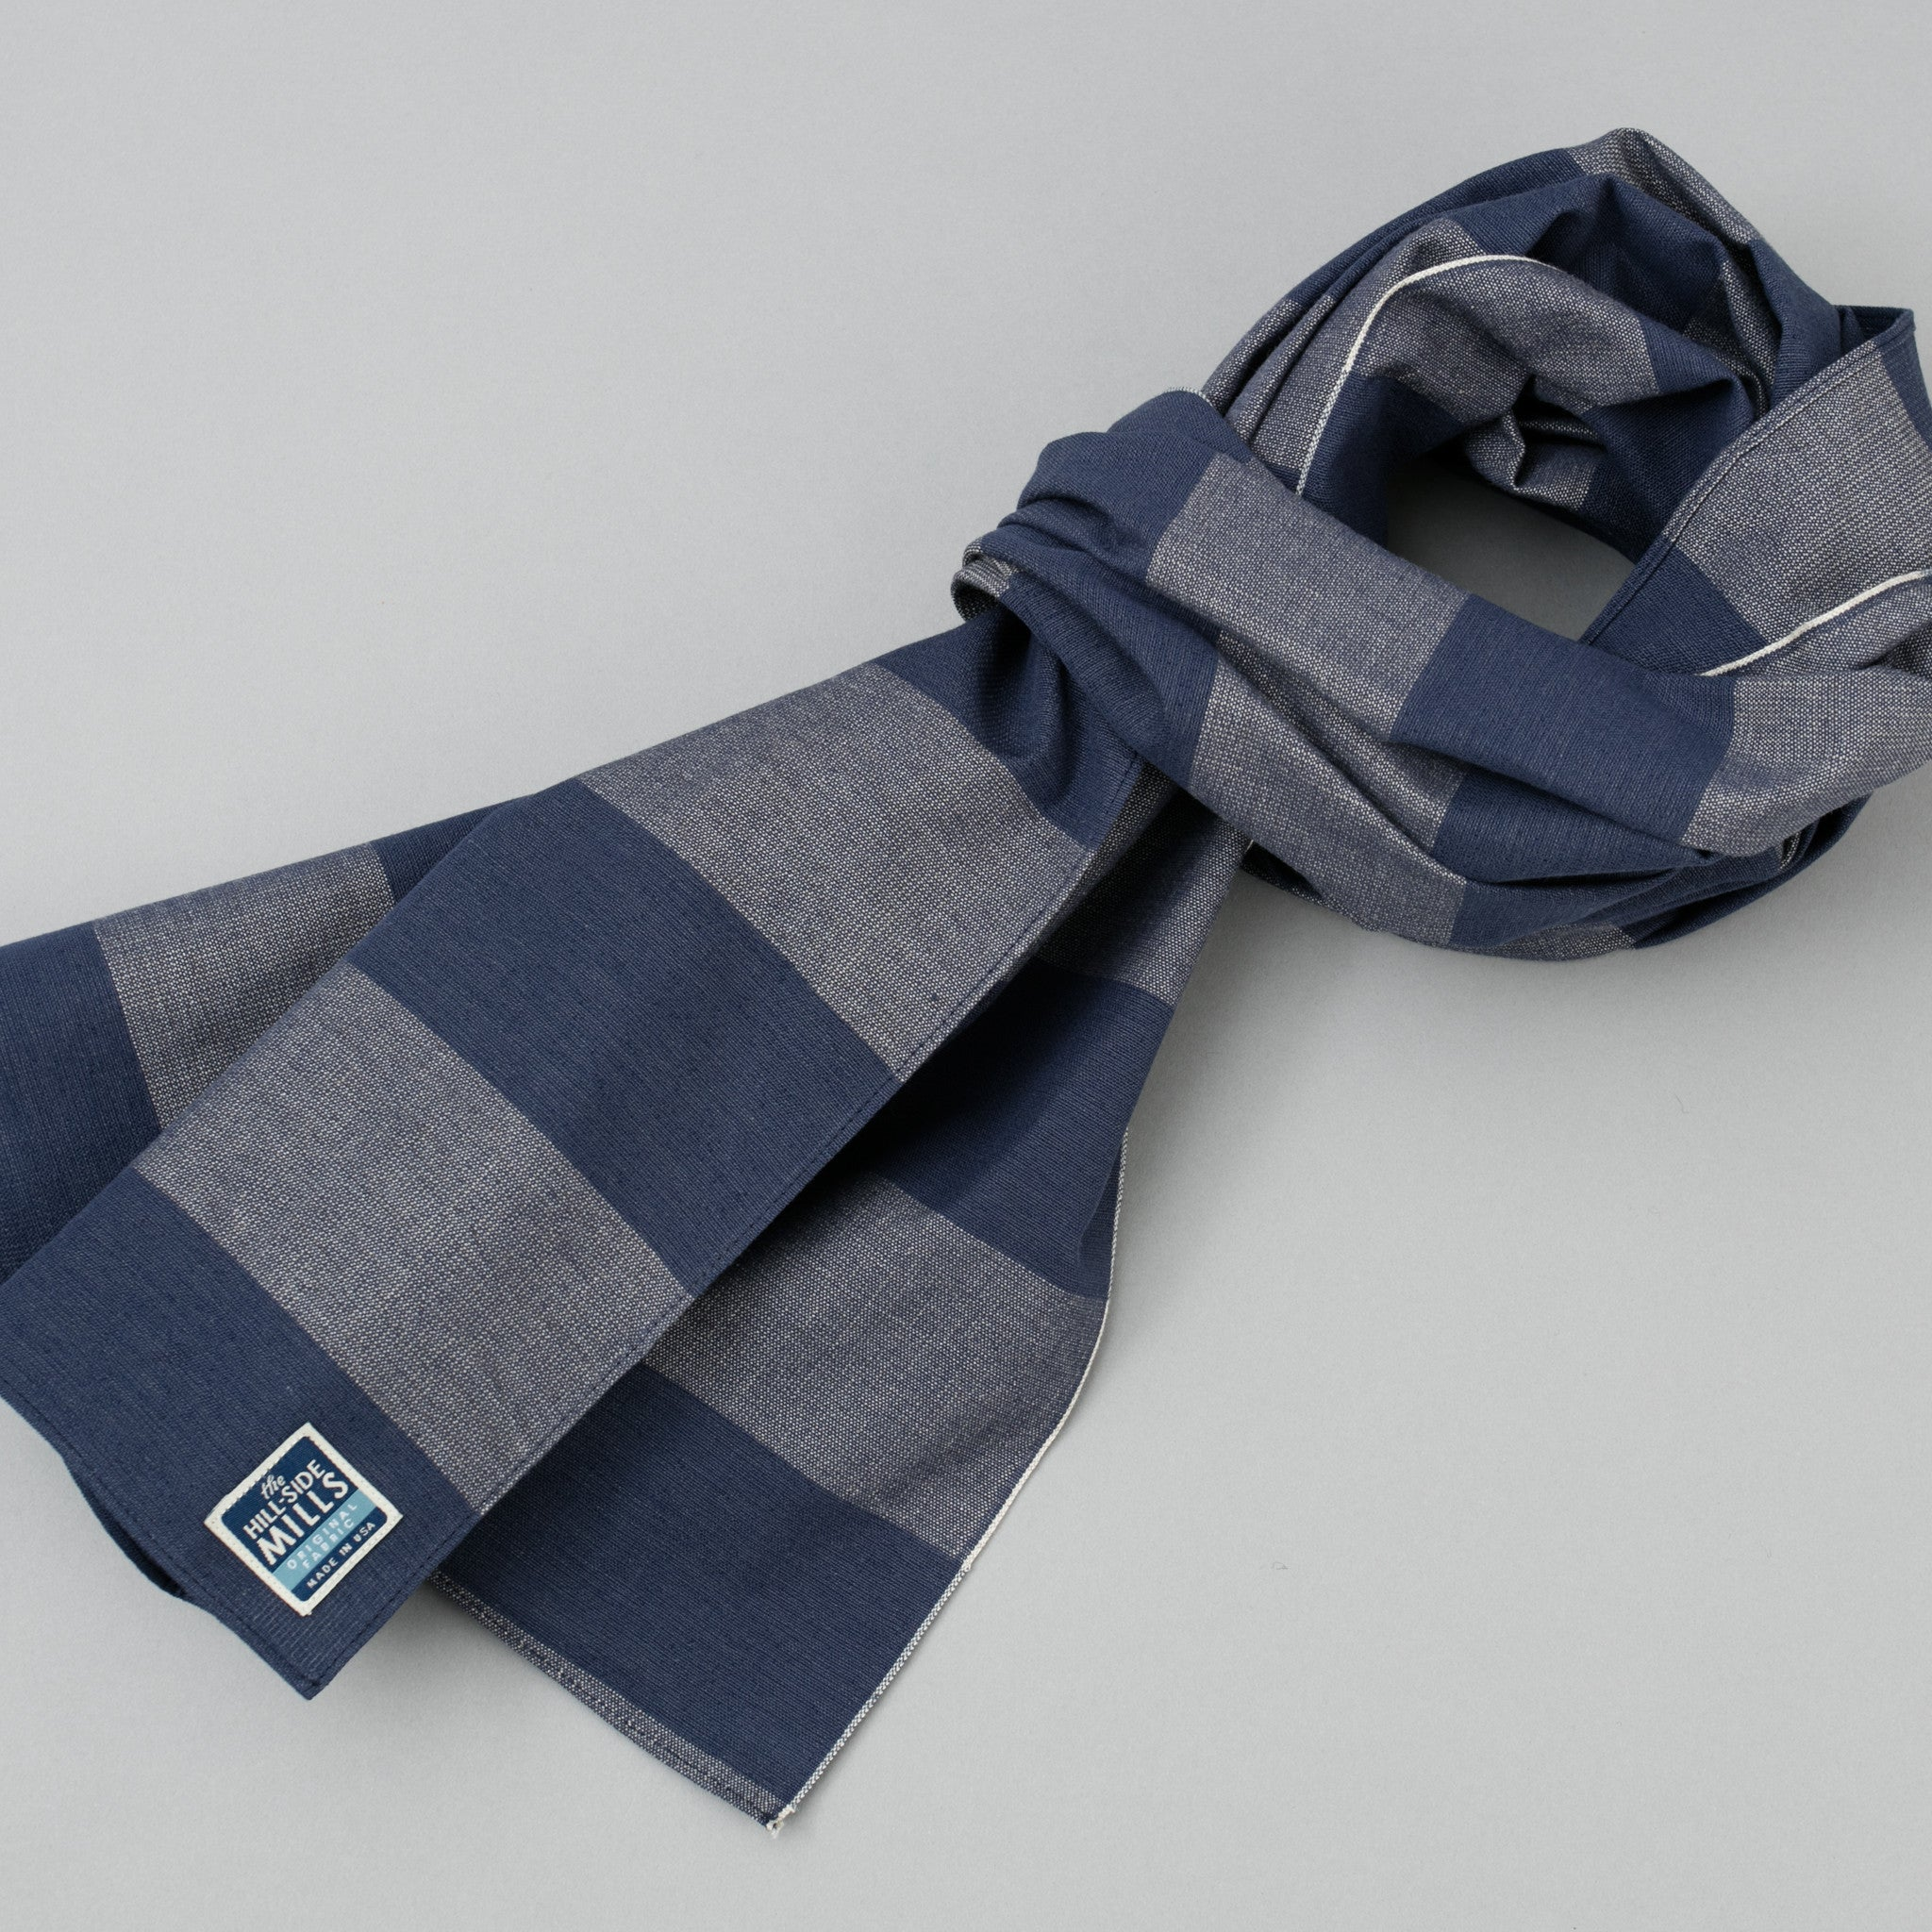 The Hill-Side - Scarf, TH-S Mills Navy Warp Giant Border Stripe, Covert Beige & Slate Blue - SC1-367 - image 1